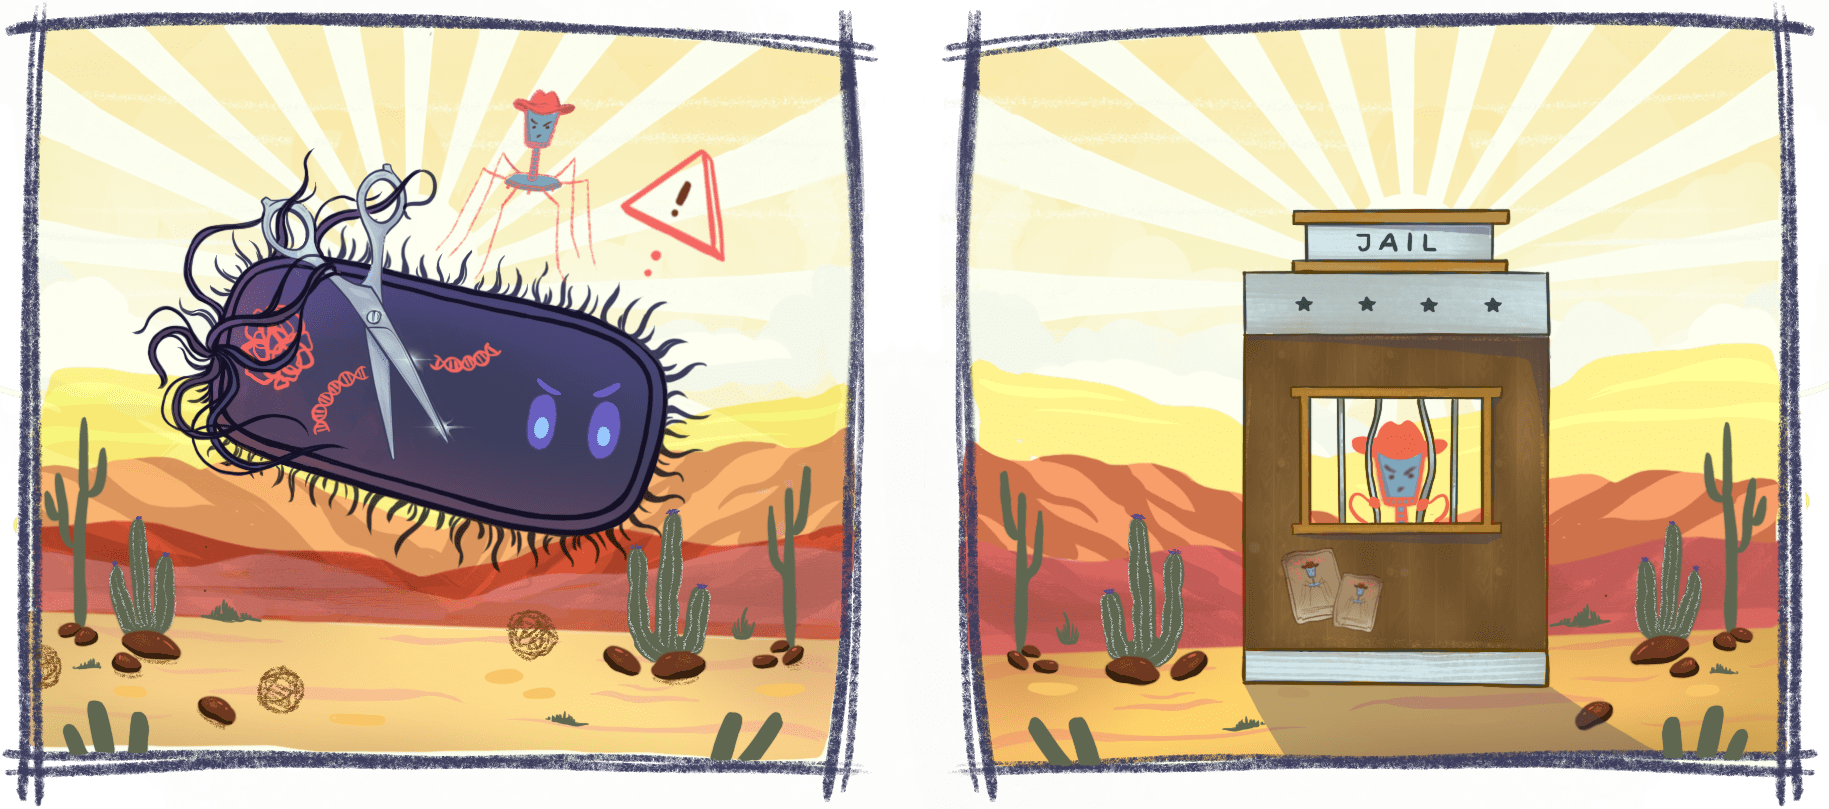 Illustration of an angered E. Coli bacterium and a bacteriophage in a cowboy hat above it. The second illustration shows the bacteriophage in jail.